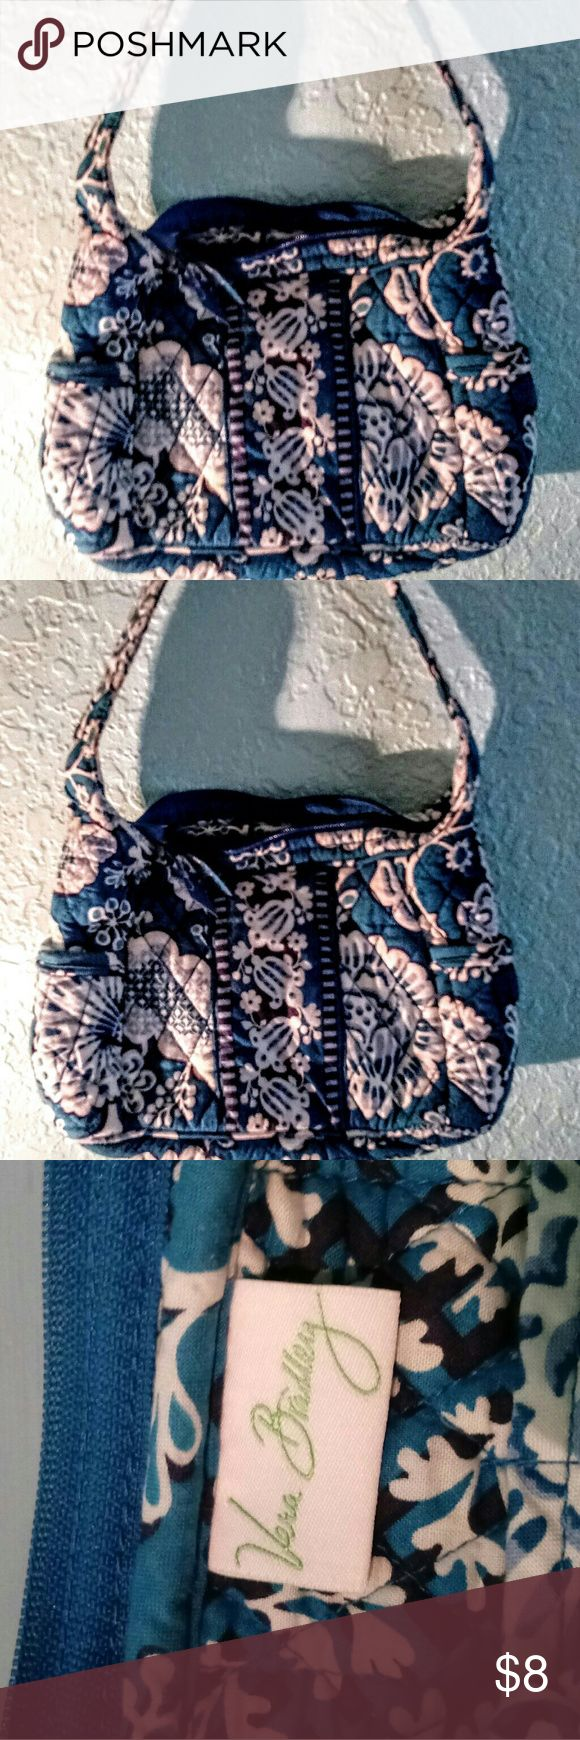 Vera Bradley Blue and White Purse Like New Vera Bradley small Blue and White Purse. With side pockets and a zipper to close on top.  7 inches long 10 inches wide Strap is 9 inches long. Vera Bradley Bags Mini Bags